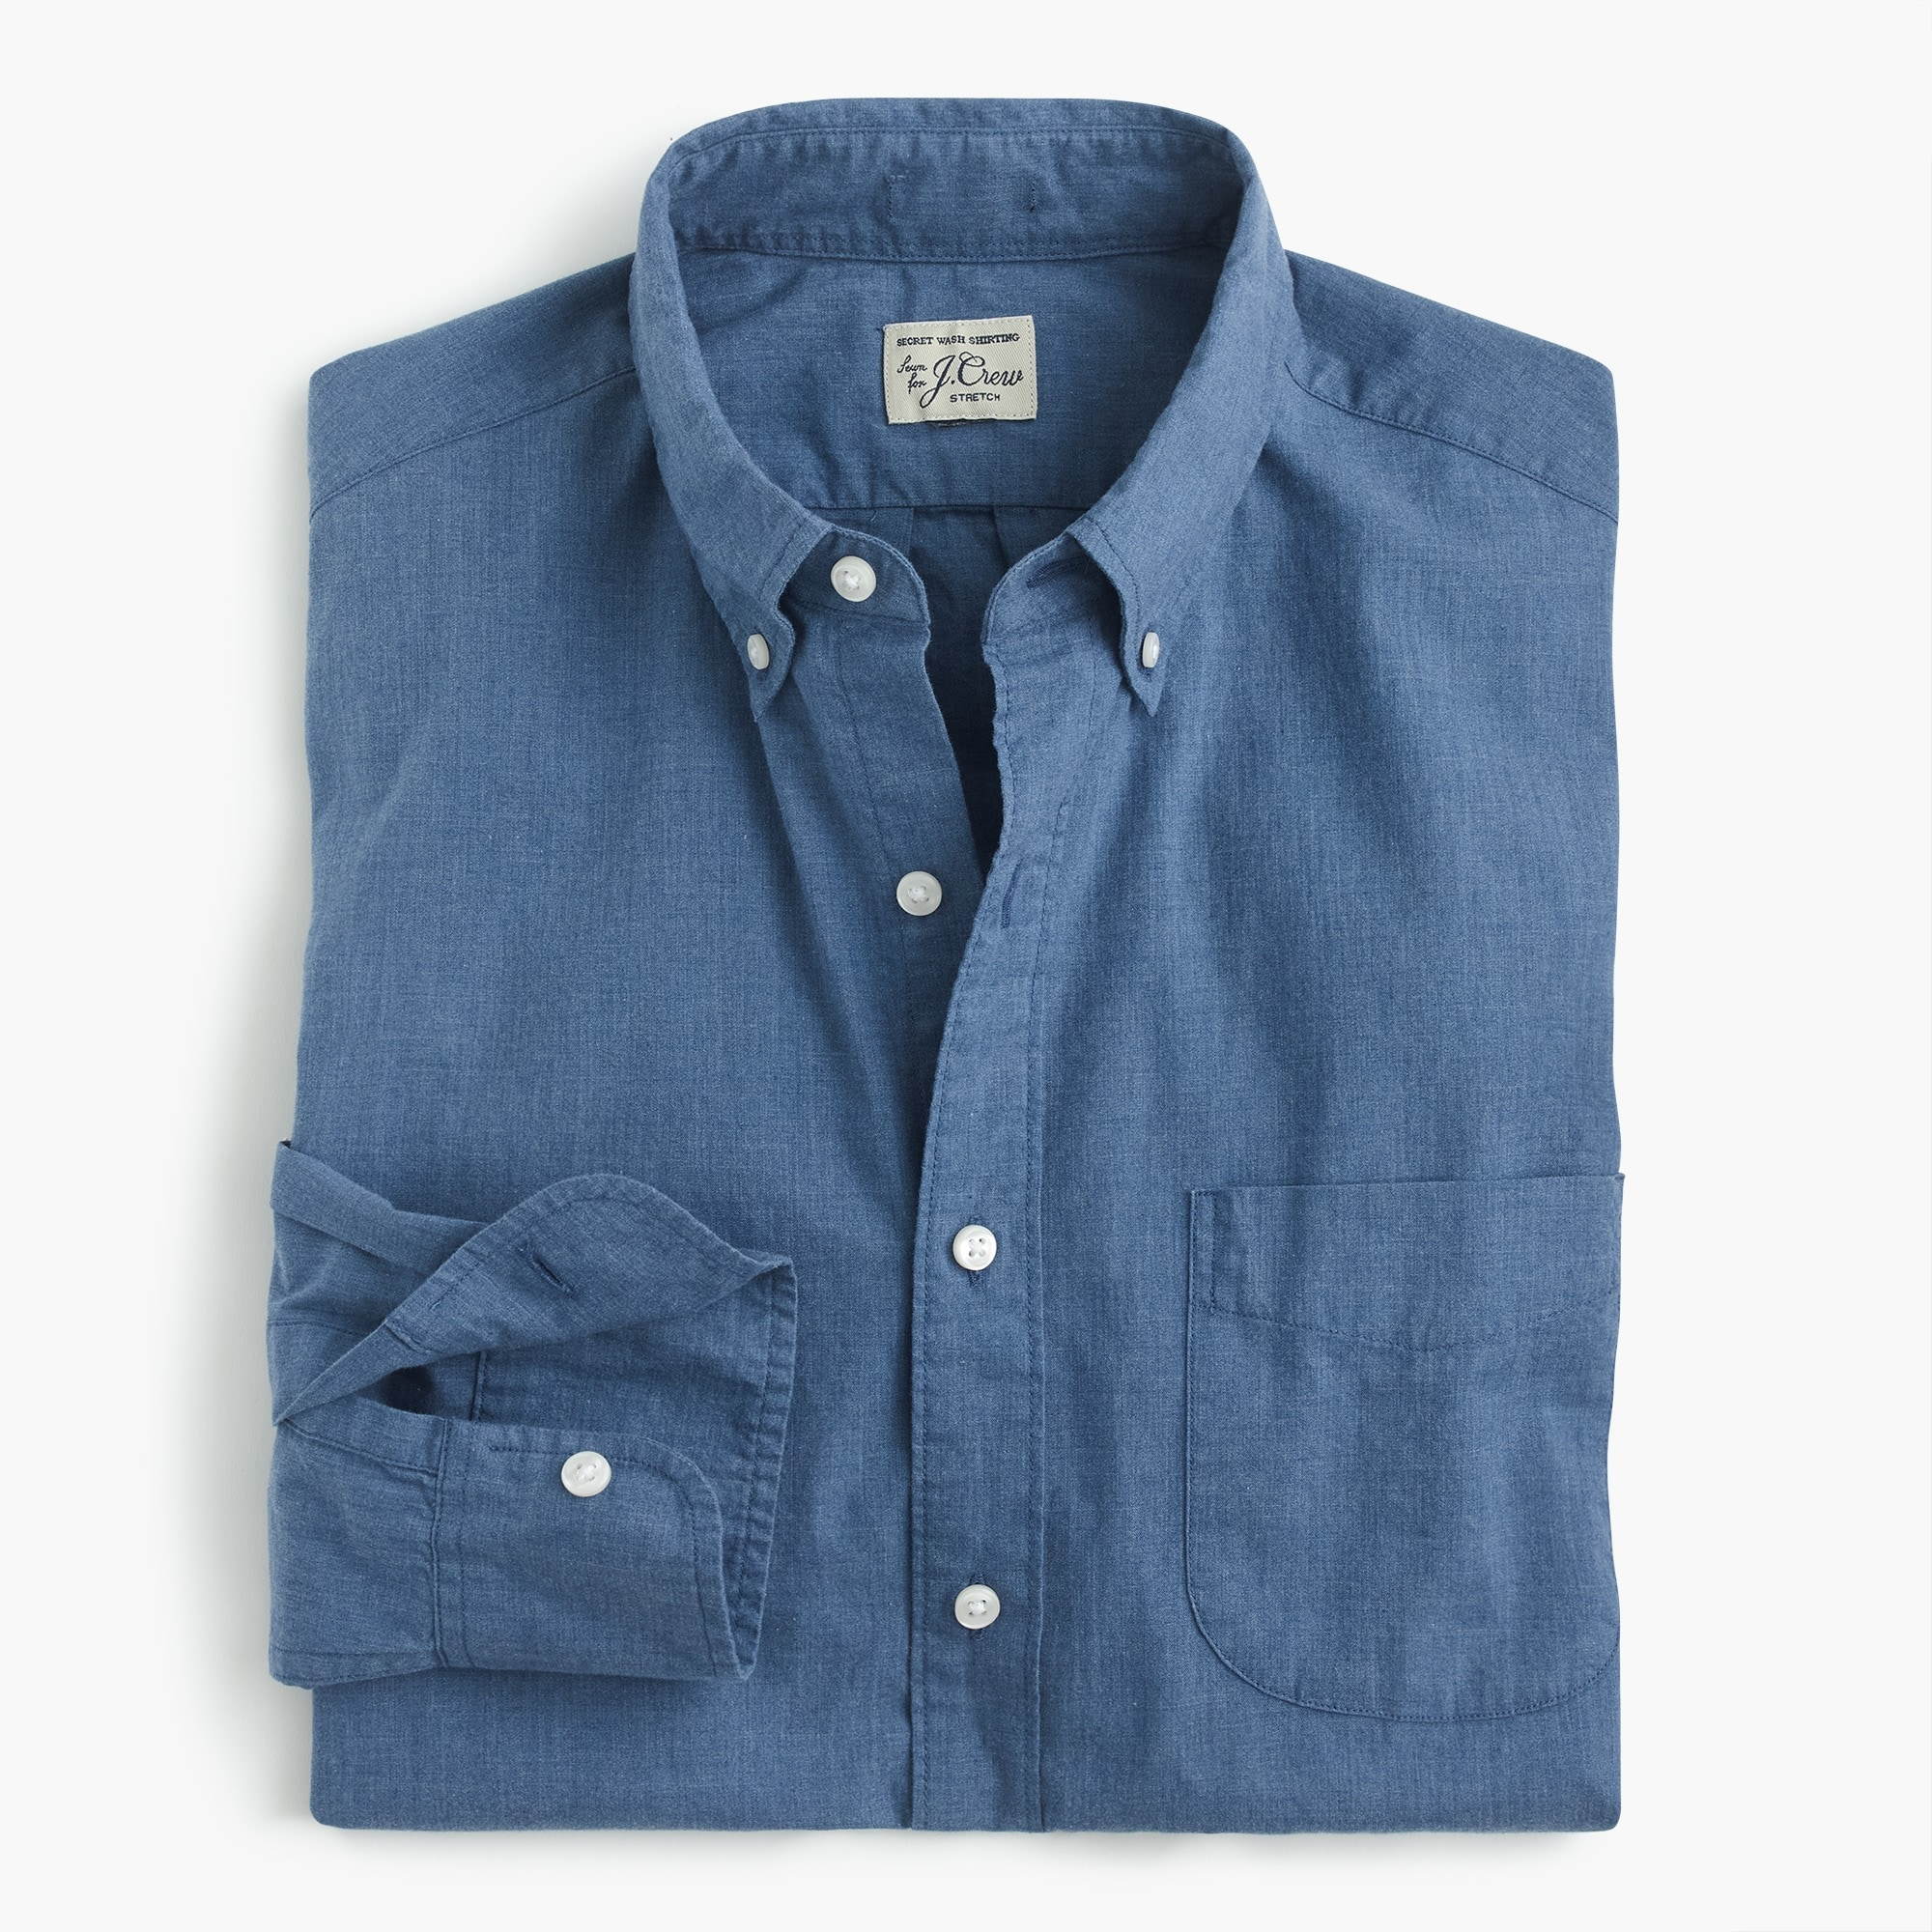 mens Stretch Secret Wash shirt in blue heather poplin